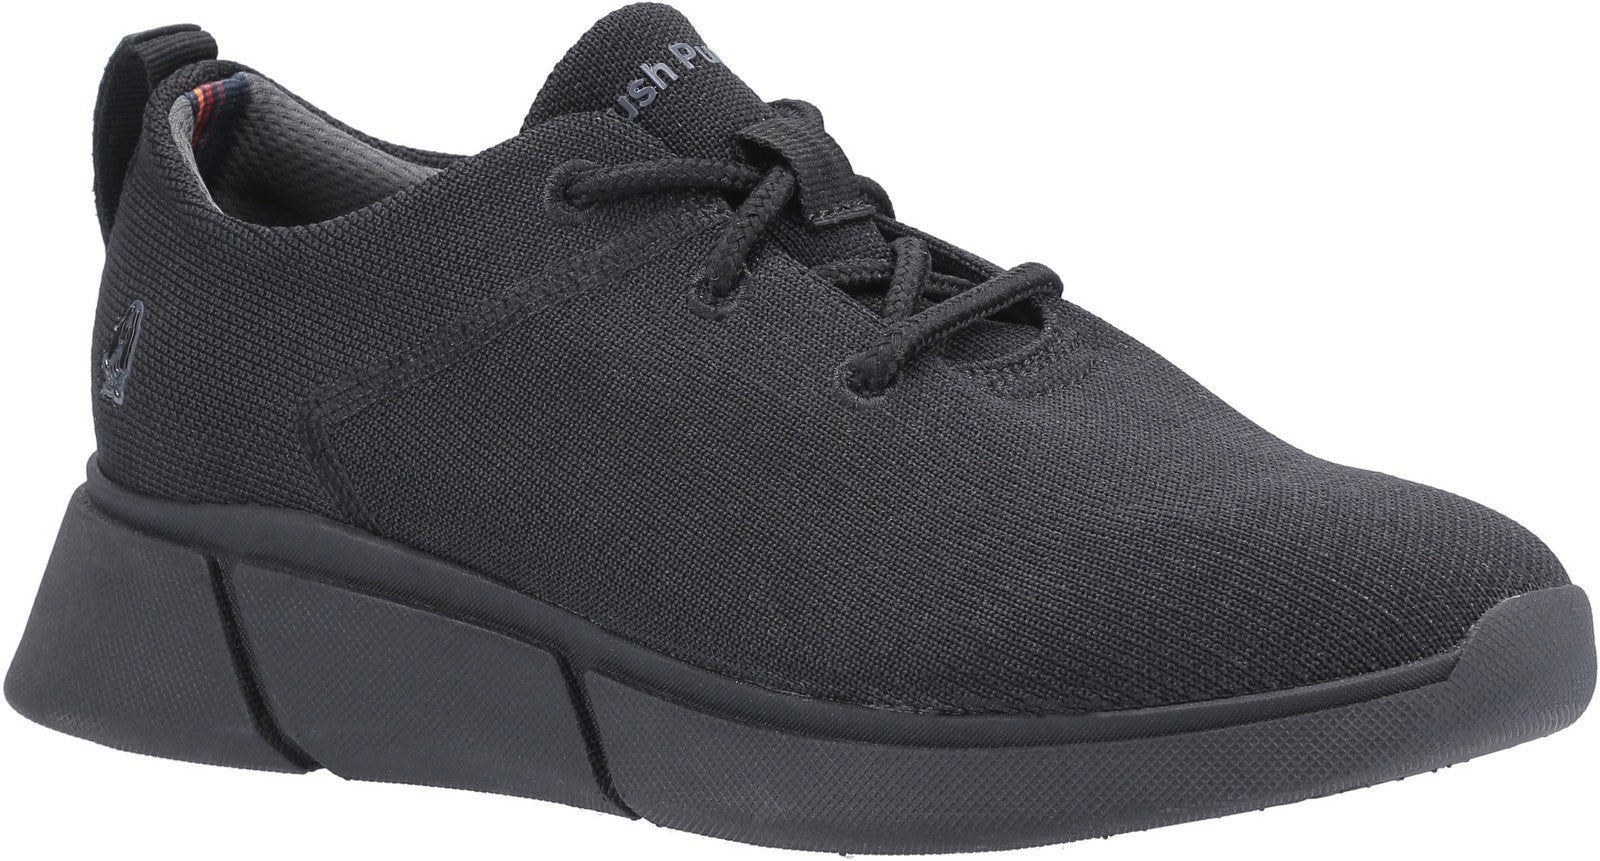 Hush Puppies Women's Makenna Lace Up Shoe Various Colours 30234